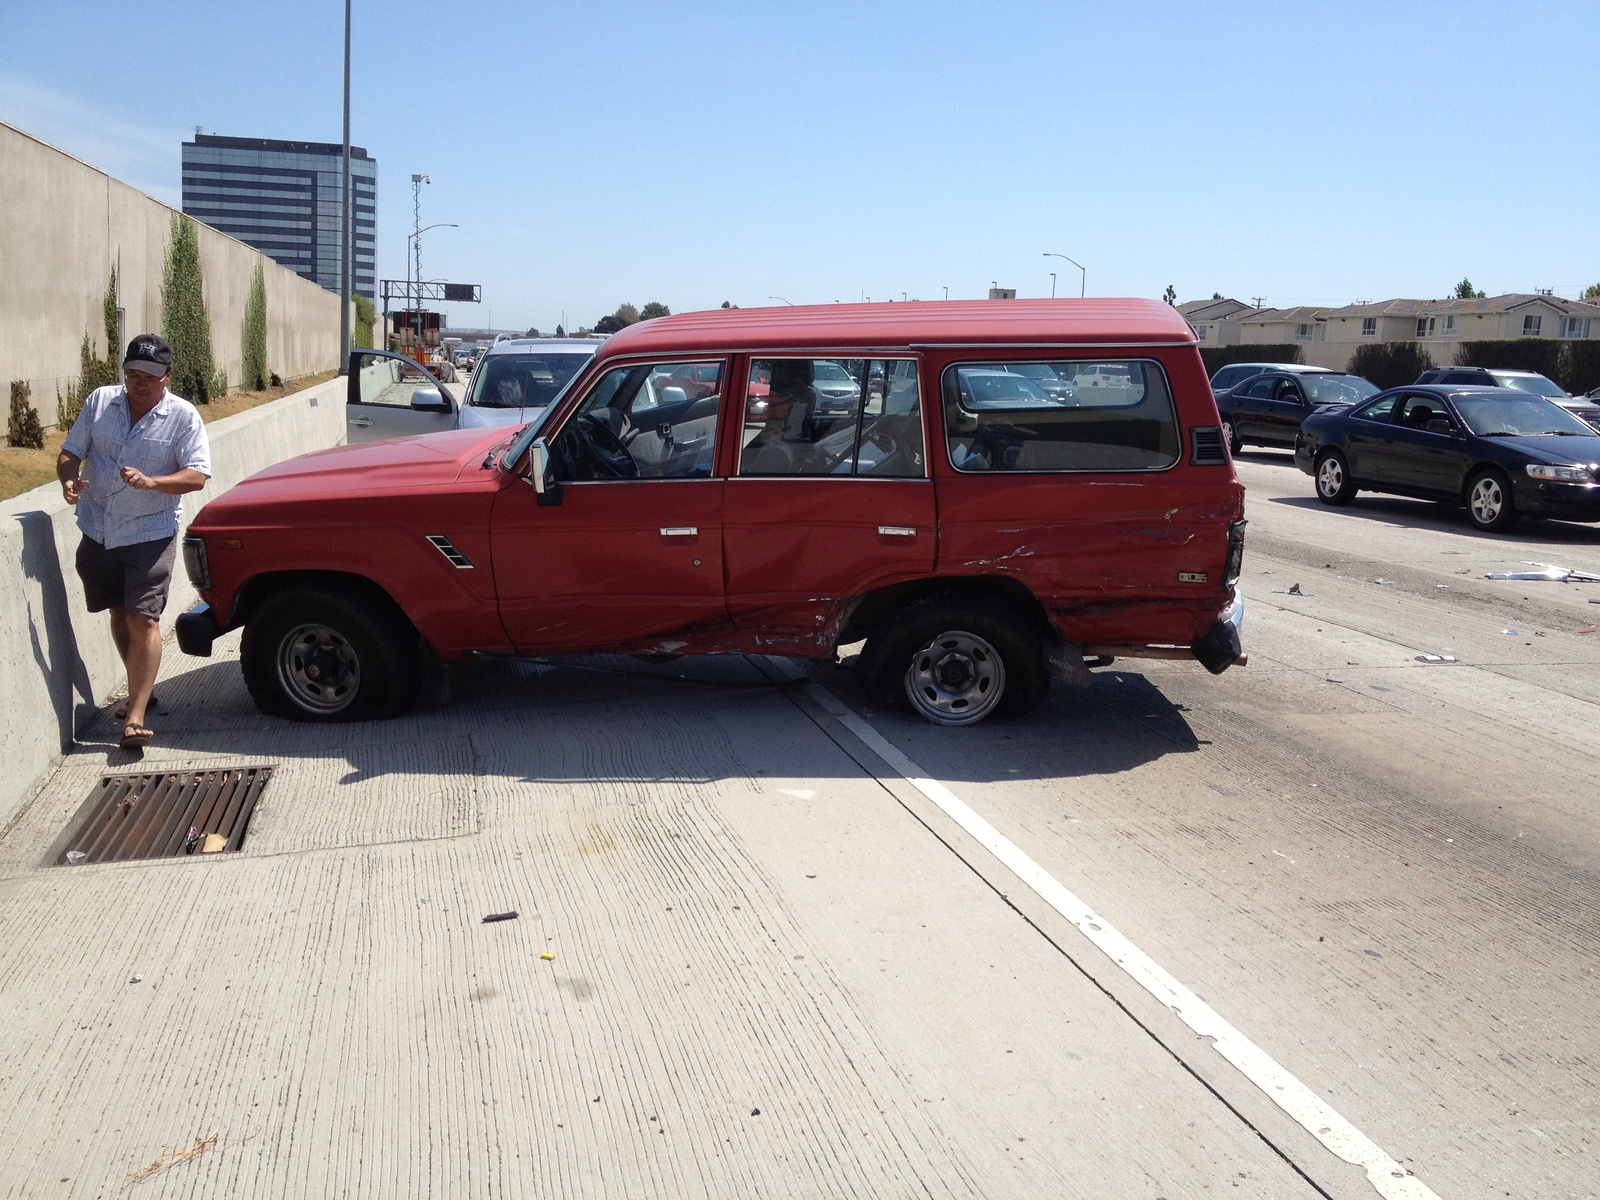 Toyota Land Cruiser Questions Are Old 1984 1989 Cruisers Safe 1973 Owners Manual From Behind On The Freeway Luckily I Was Able To Find A Donor Vehicle With Good Driver Side Body Parts